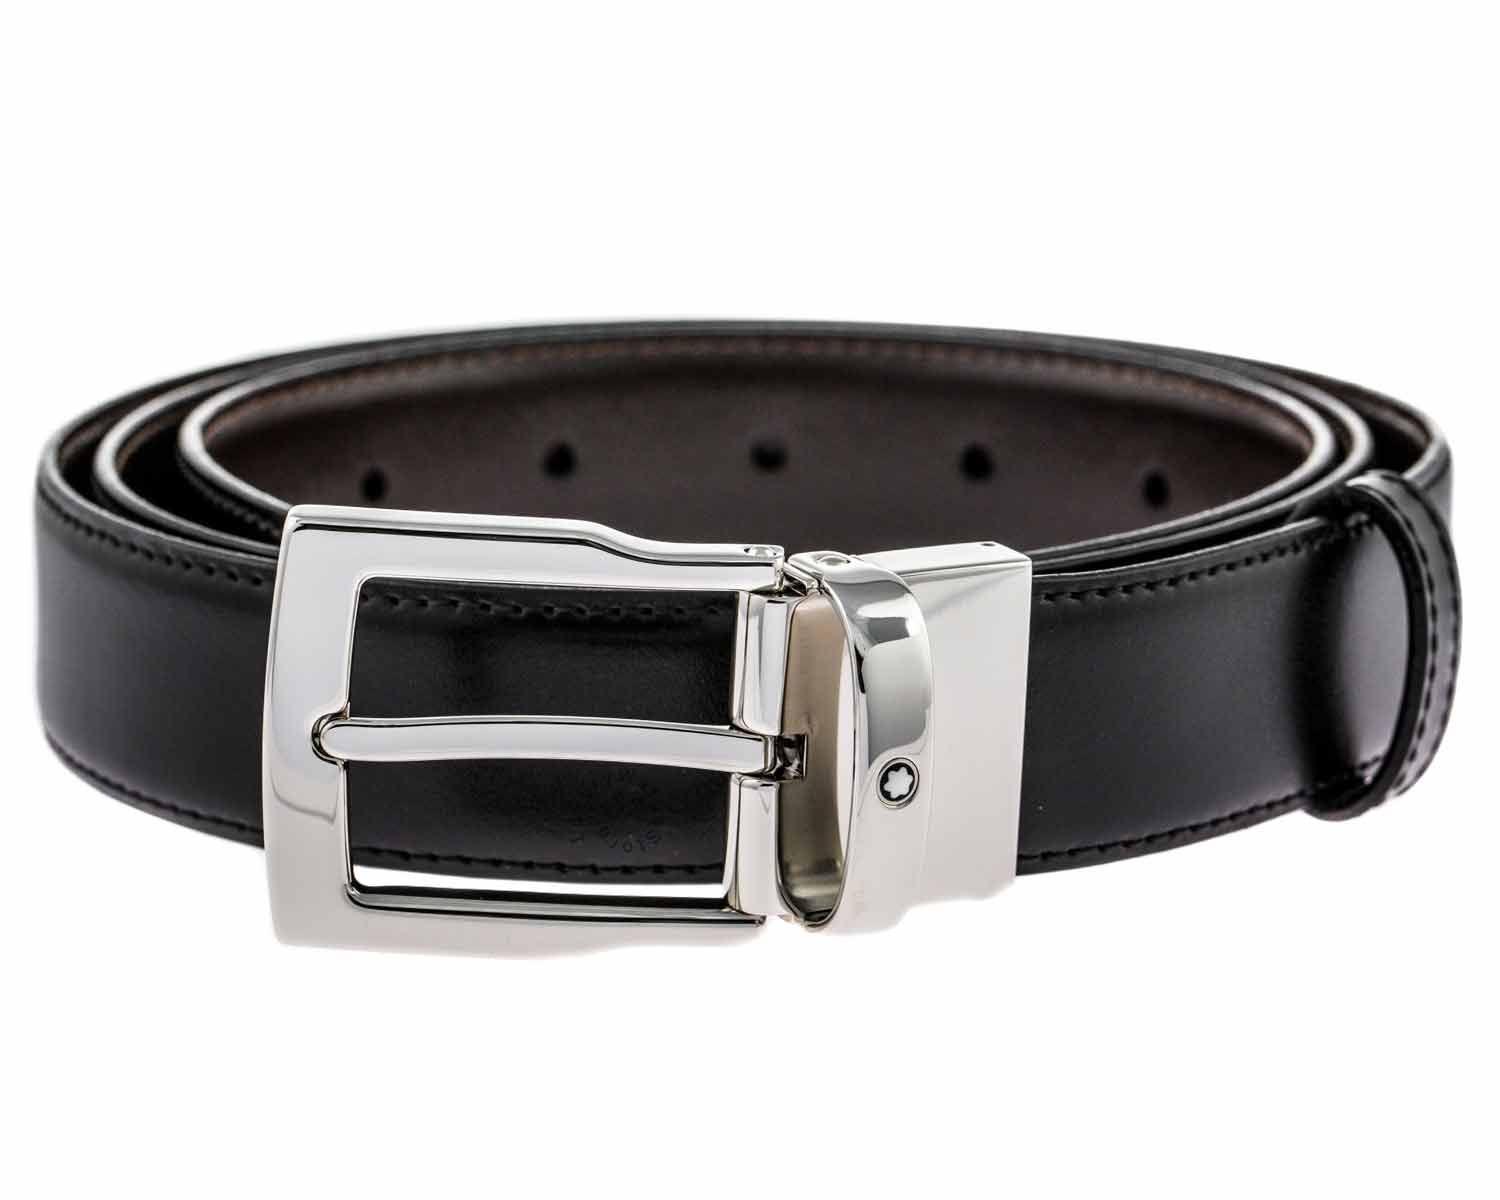 Montblanc Classic Line Men's Reversible Leather Belt 109738